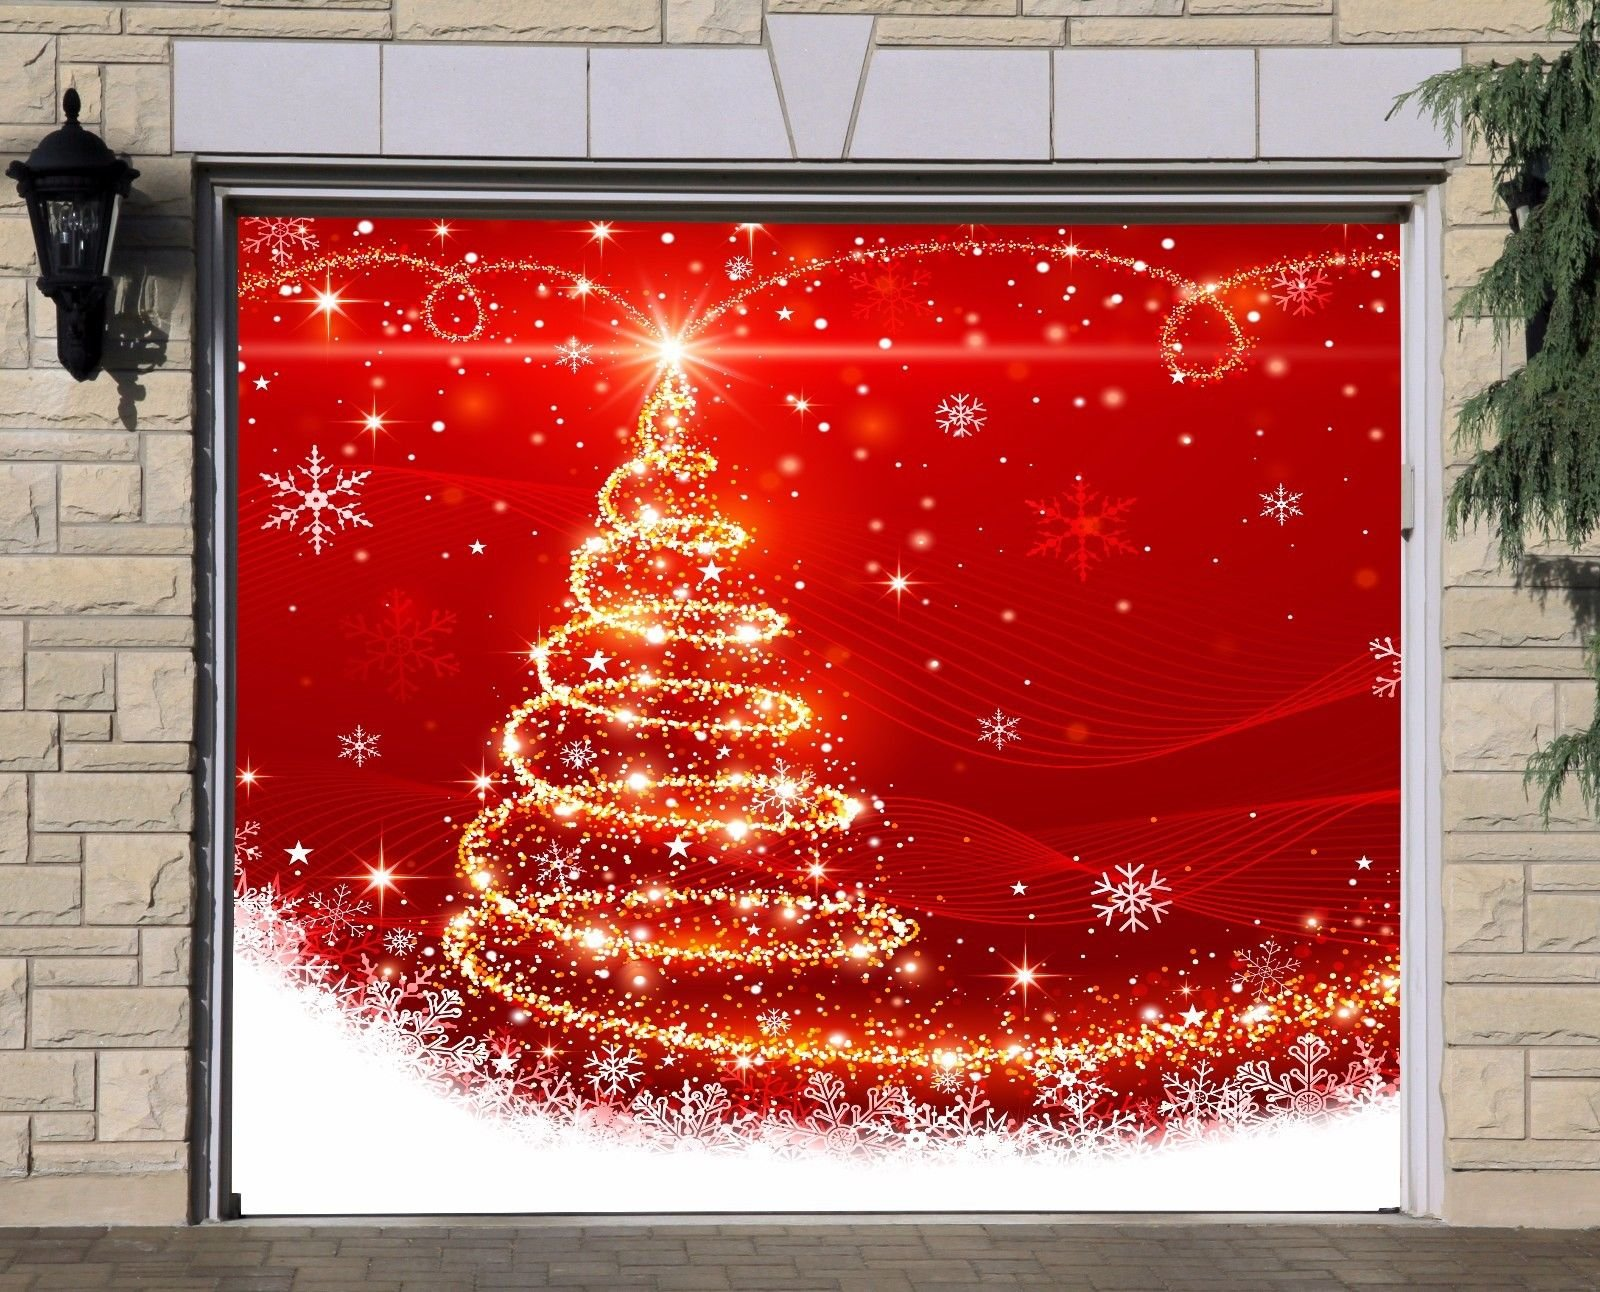 Single Garage Door Covers Merry Christmas Billboard Full Color Door Decor Decorations of House Garage Christmas Tree 3D Effect Print Holiday Mural Banner Garage Door Banner Size 83 x 89 inches DAV28 by WallTattooHome